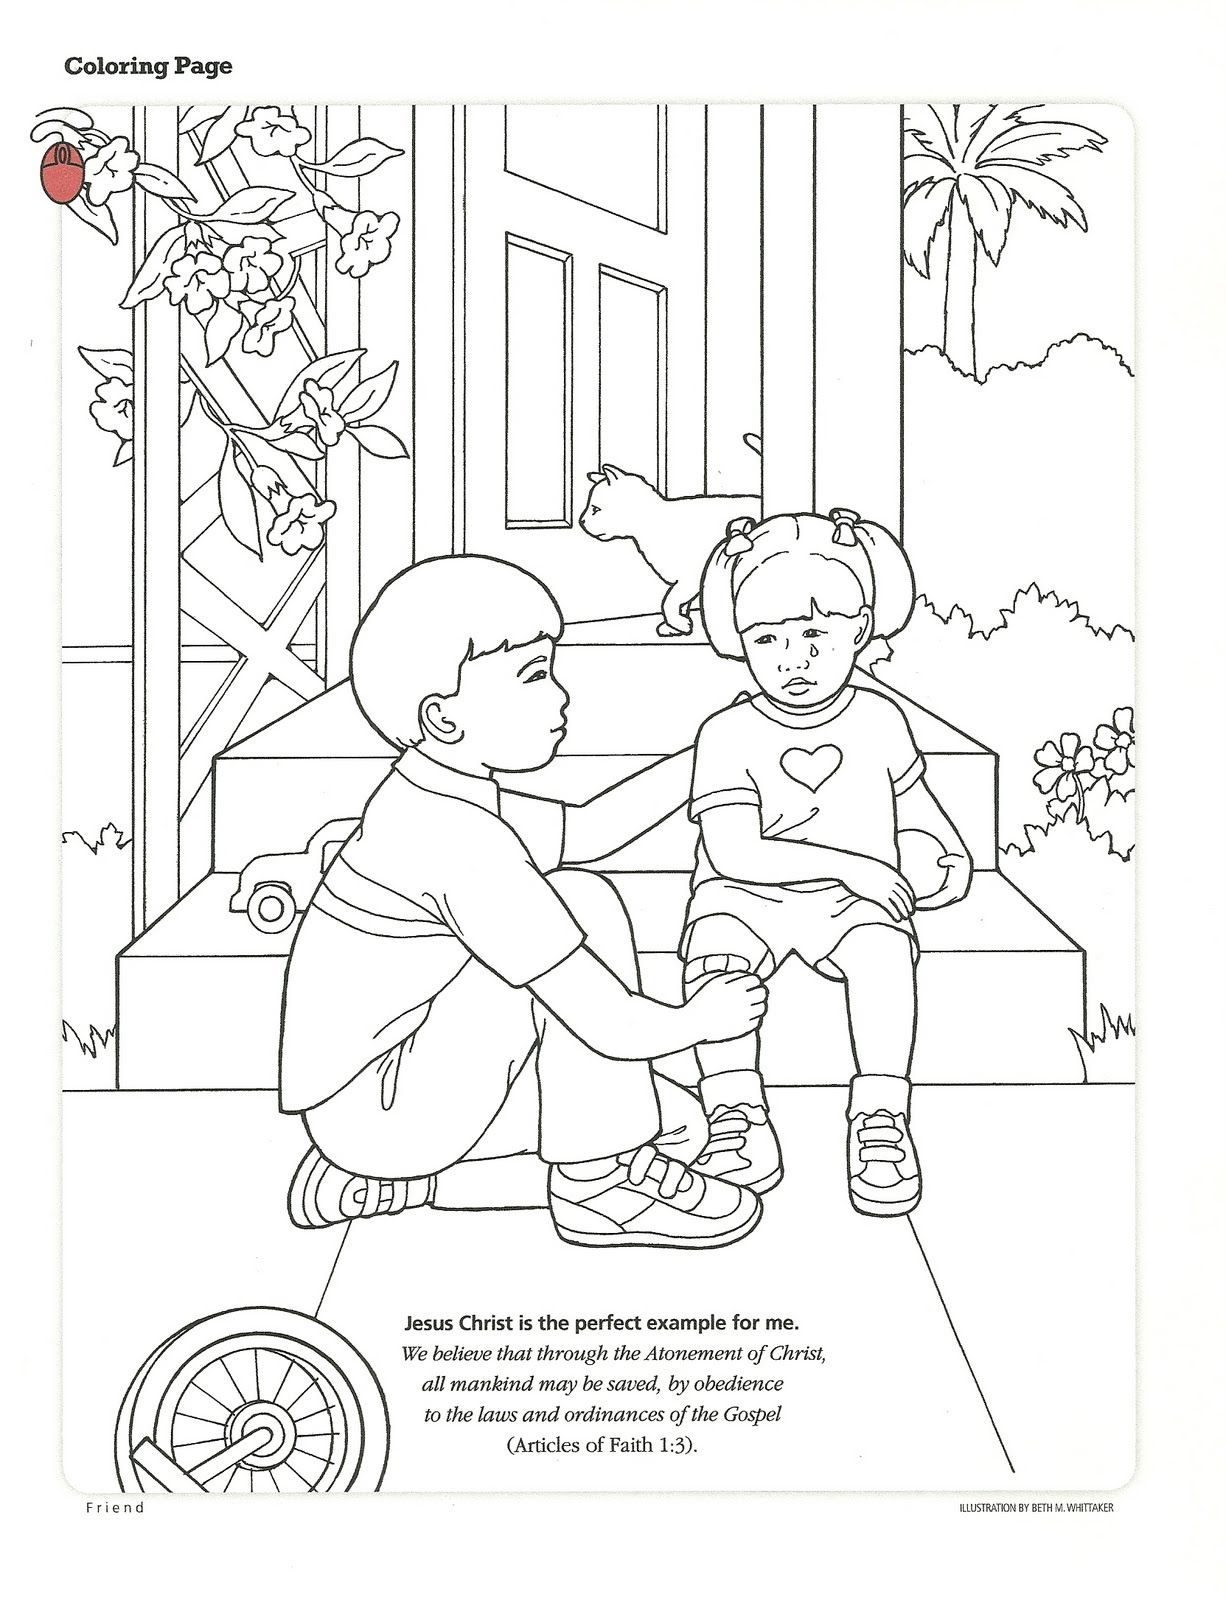 Lds Primary Coloring Pages Activity From The Friend September